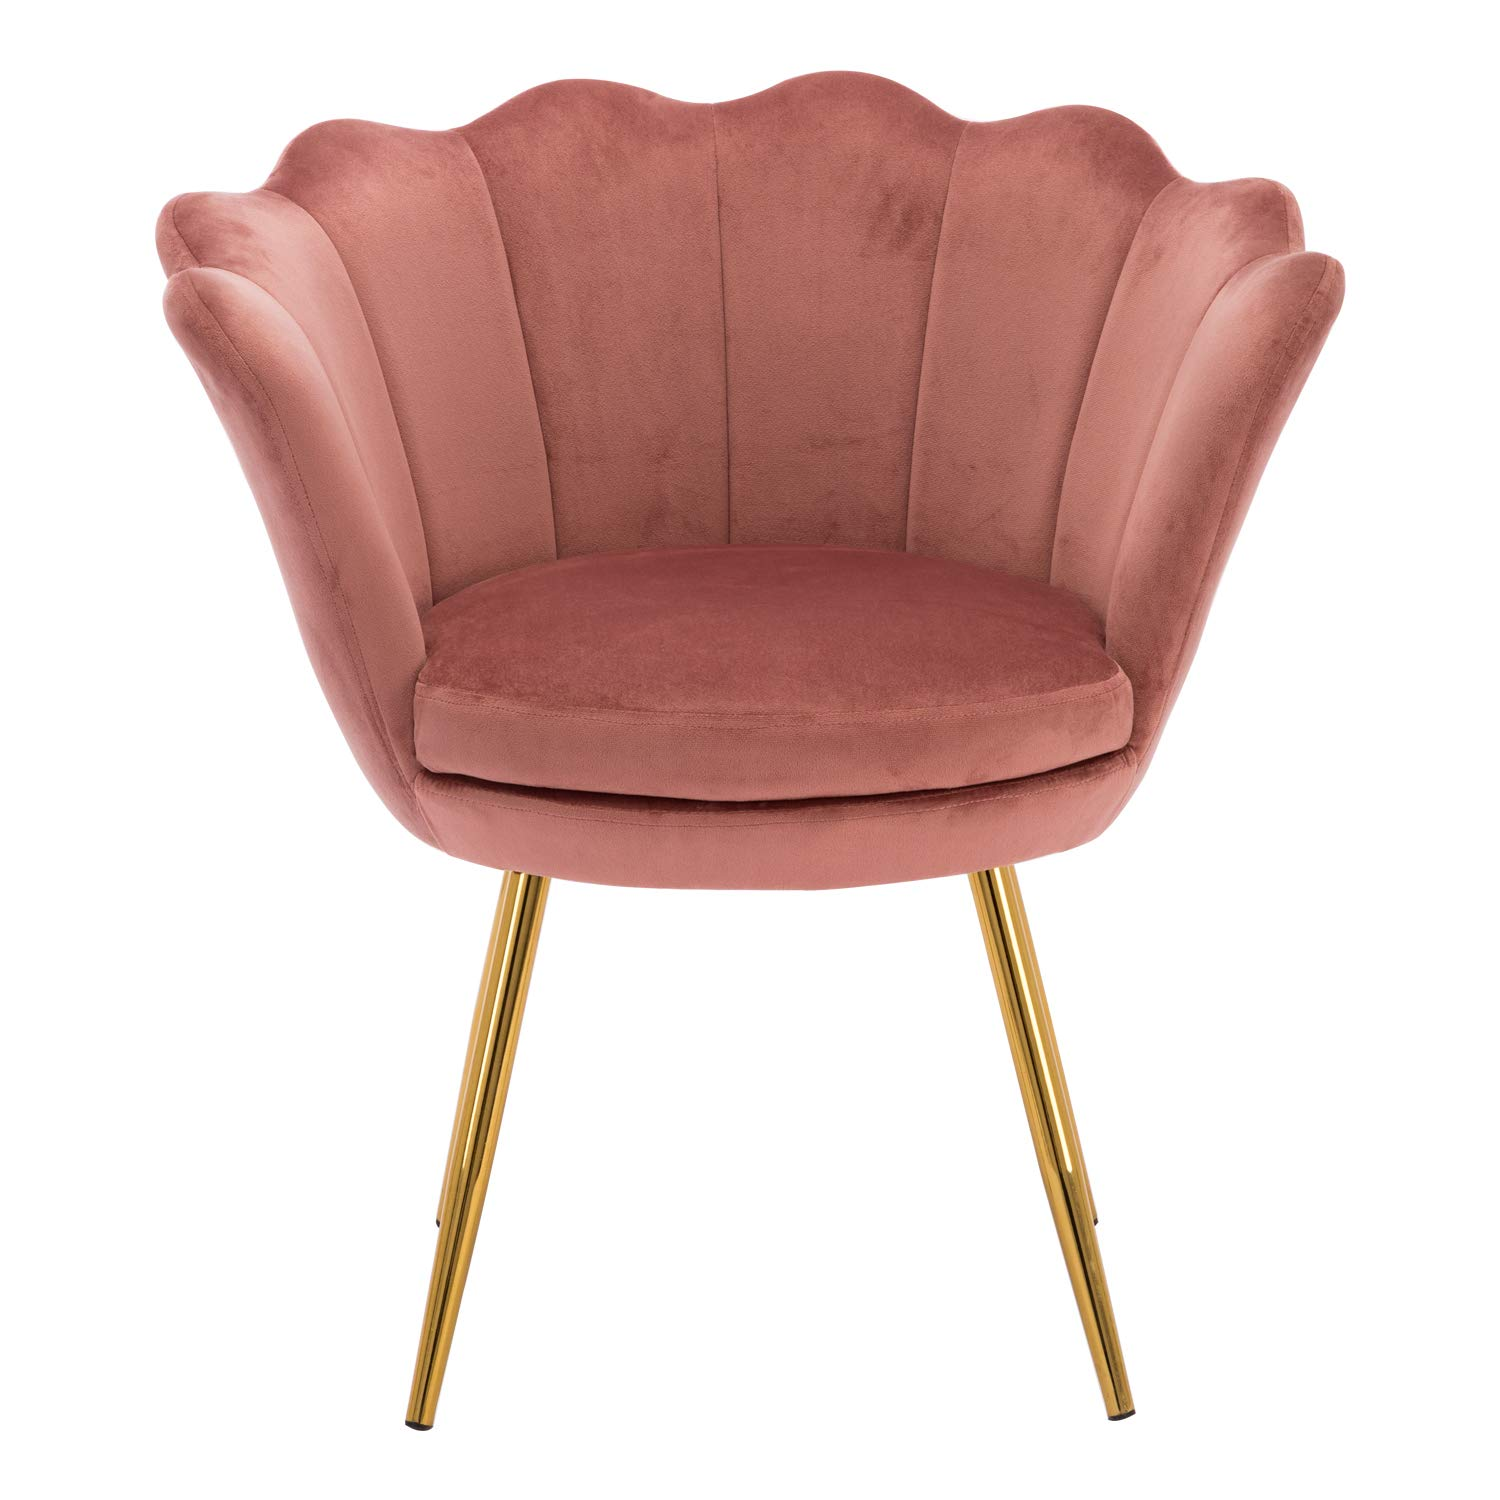 Living Room Chair, Mid Century Modern Retro Leisure Velvet Accent Chair with Golden Metal Legs, Vanity Chair for Bedroom Dresser, Upholstered Guest Chair - Dusty Pink by Kmax